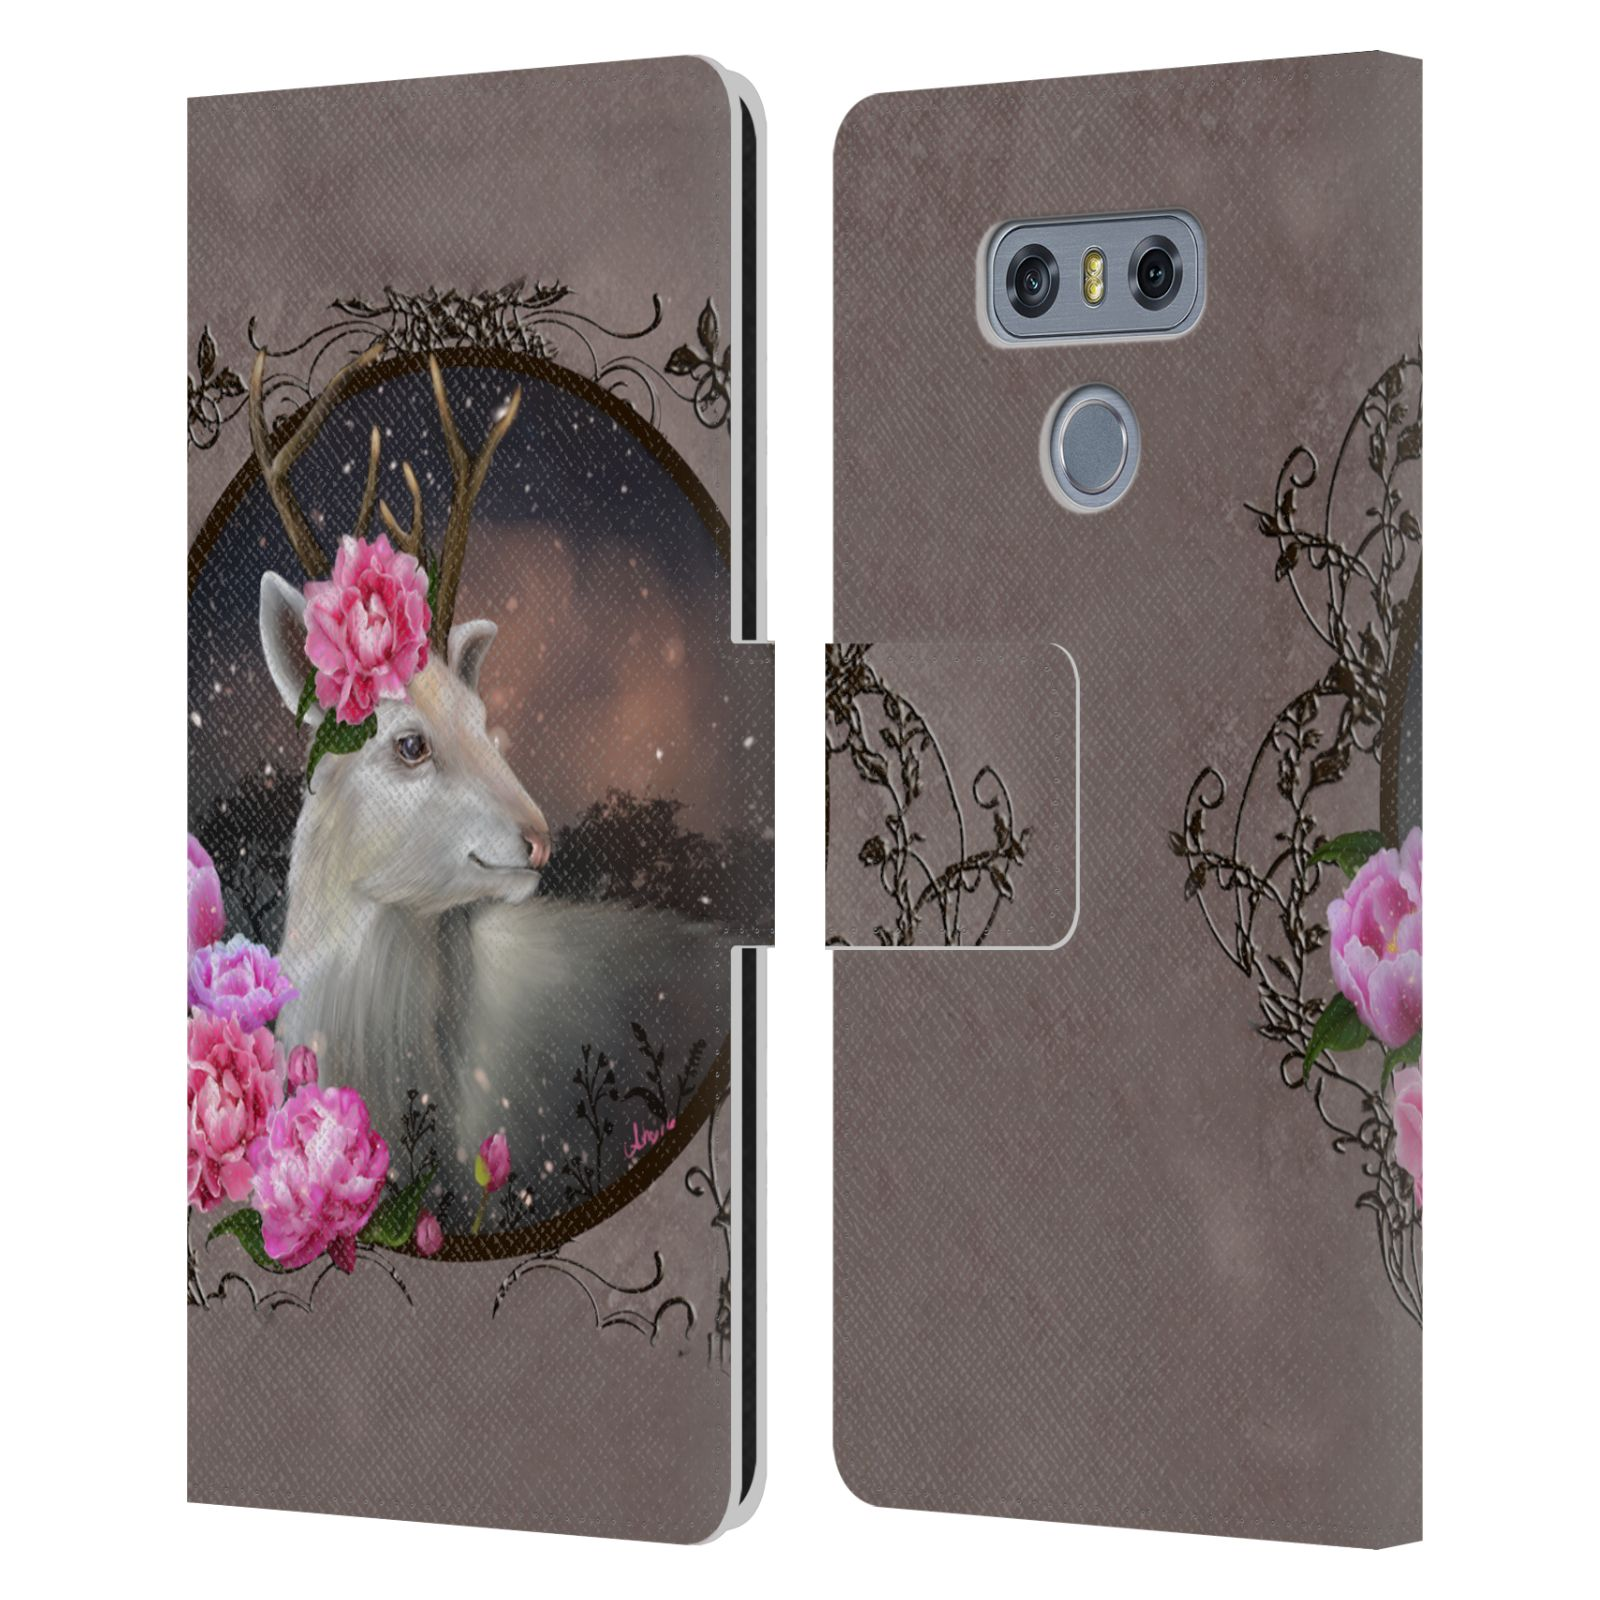 OFFICIAL-ASH-EVANS-ANIMALS-LEATHER-BOOK-WALLET-CASE-COVER-FOR-LG-PHONES-1